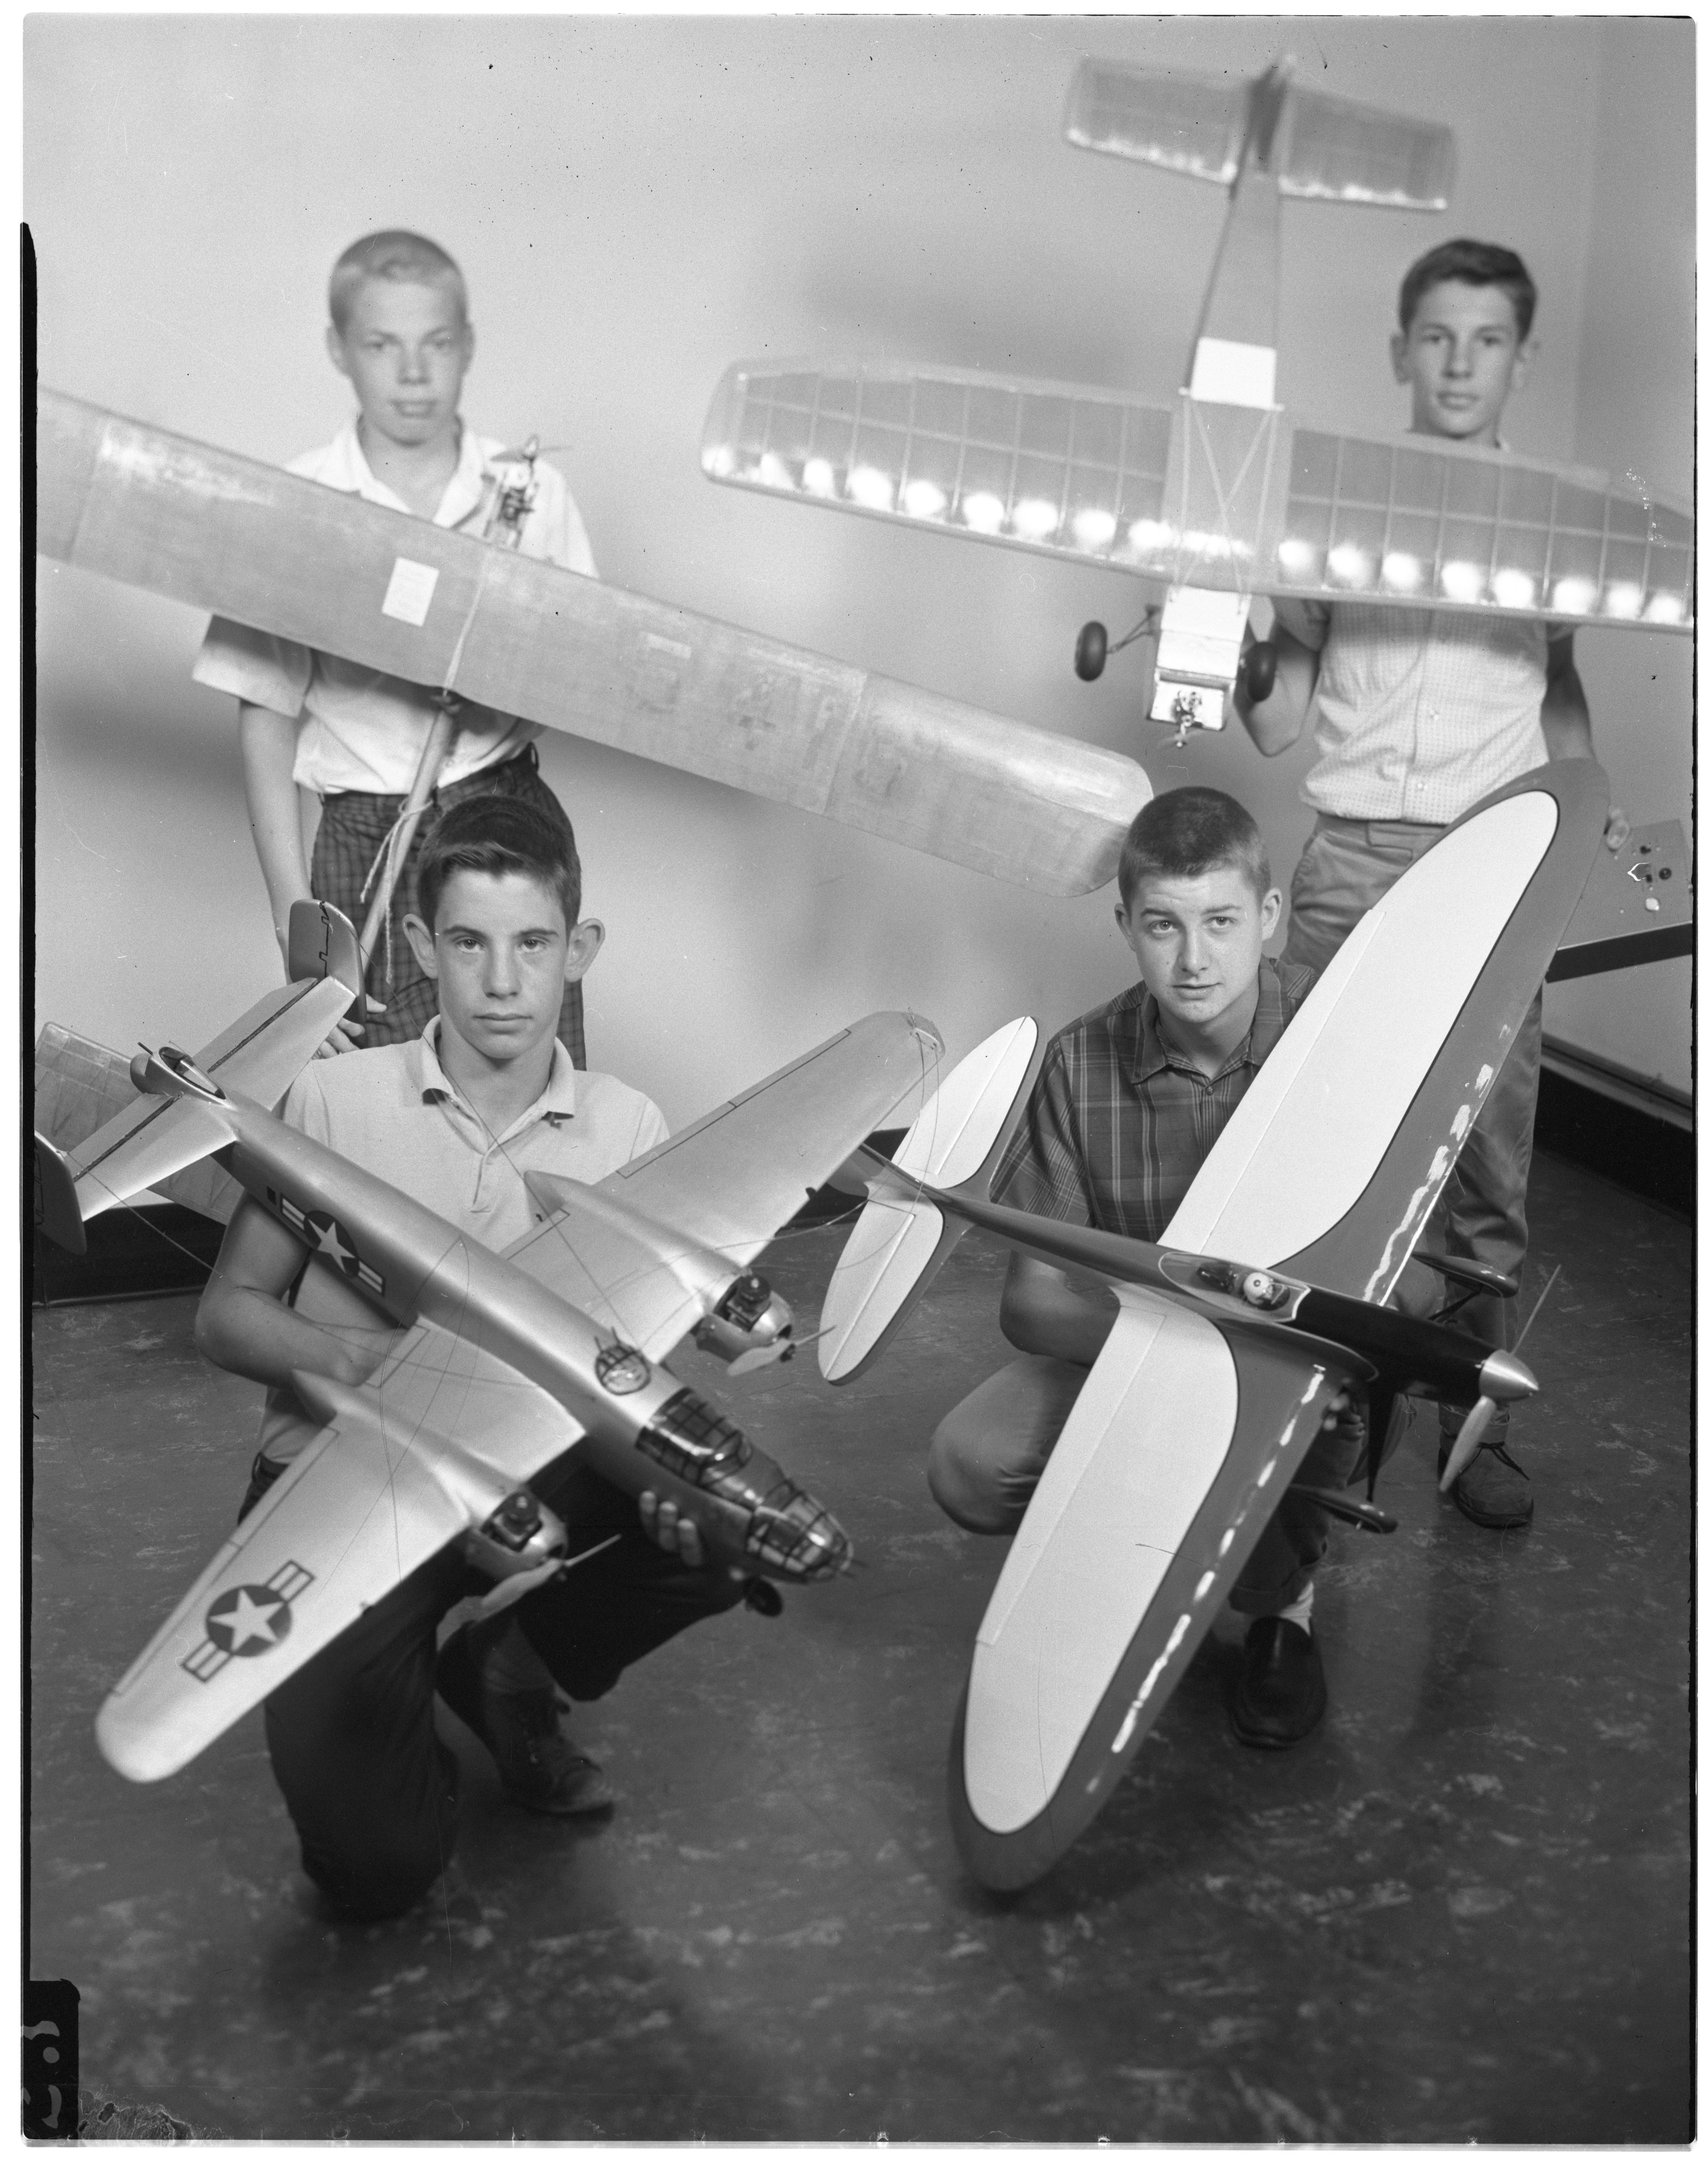 Young Model Airplane Enthusiasts Display Their Models To Be Shown At Ann Arbor Airfoilers Contest, August 1961 image